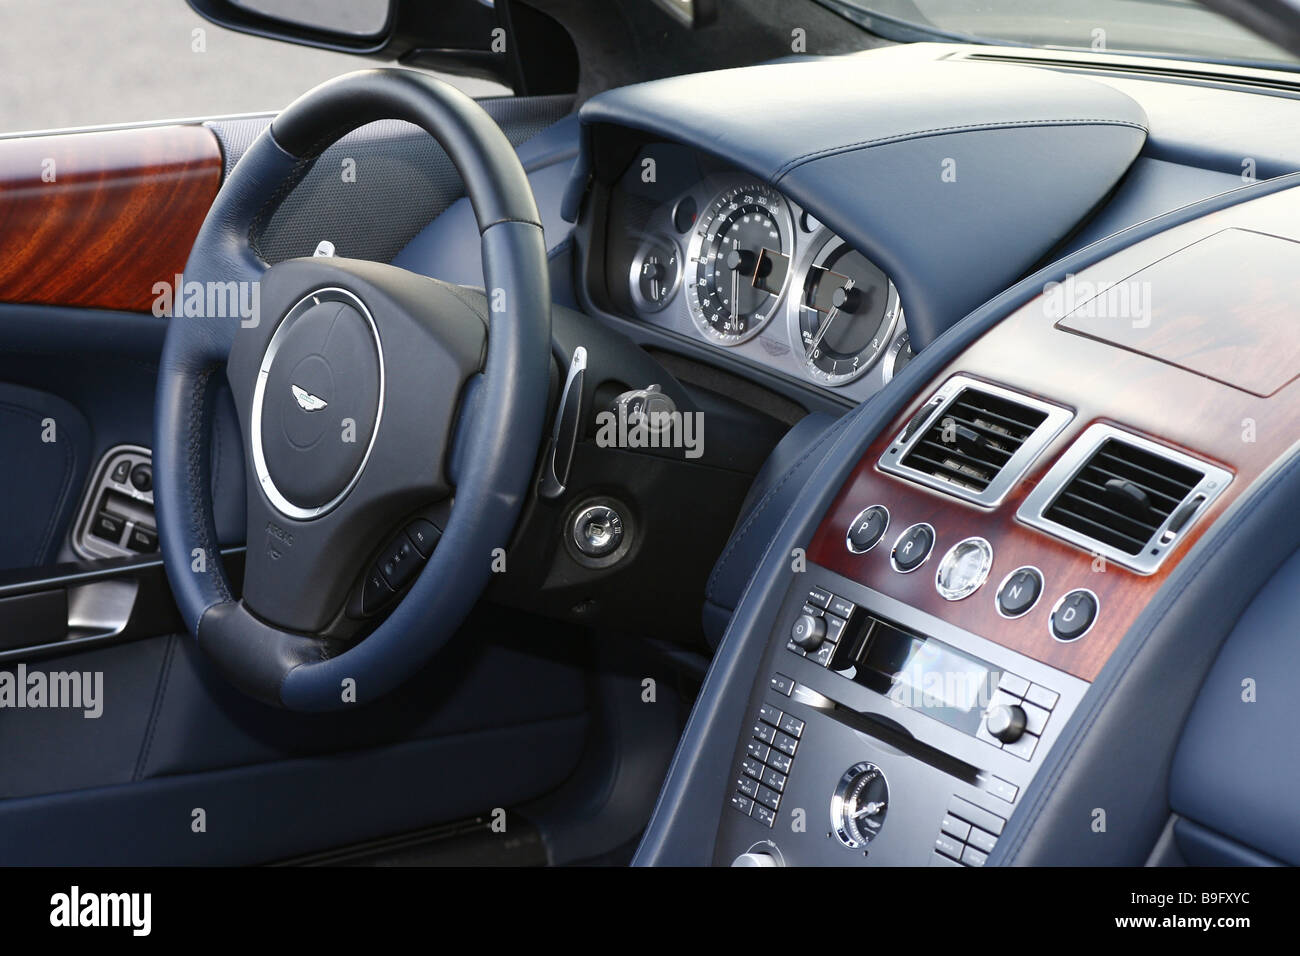 Car Aston Martin DB9 Volante Cockpit Detail Series Car Sport Cars Cabrio  Driver Side Armatures Wood Leather Symbol Spin Driving